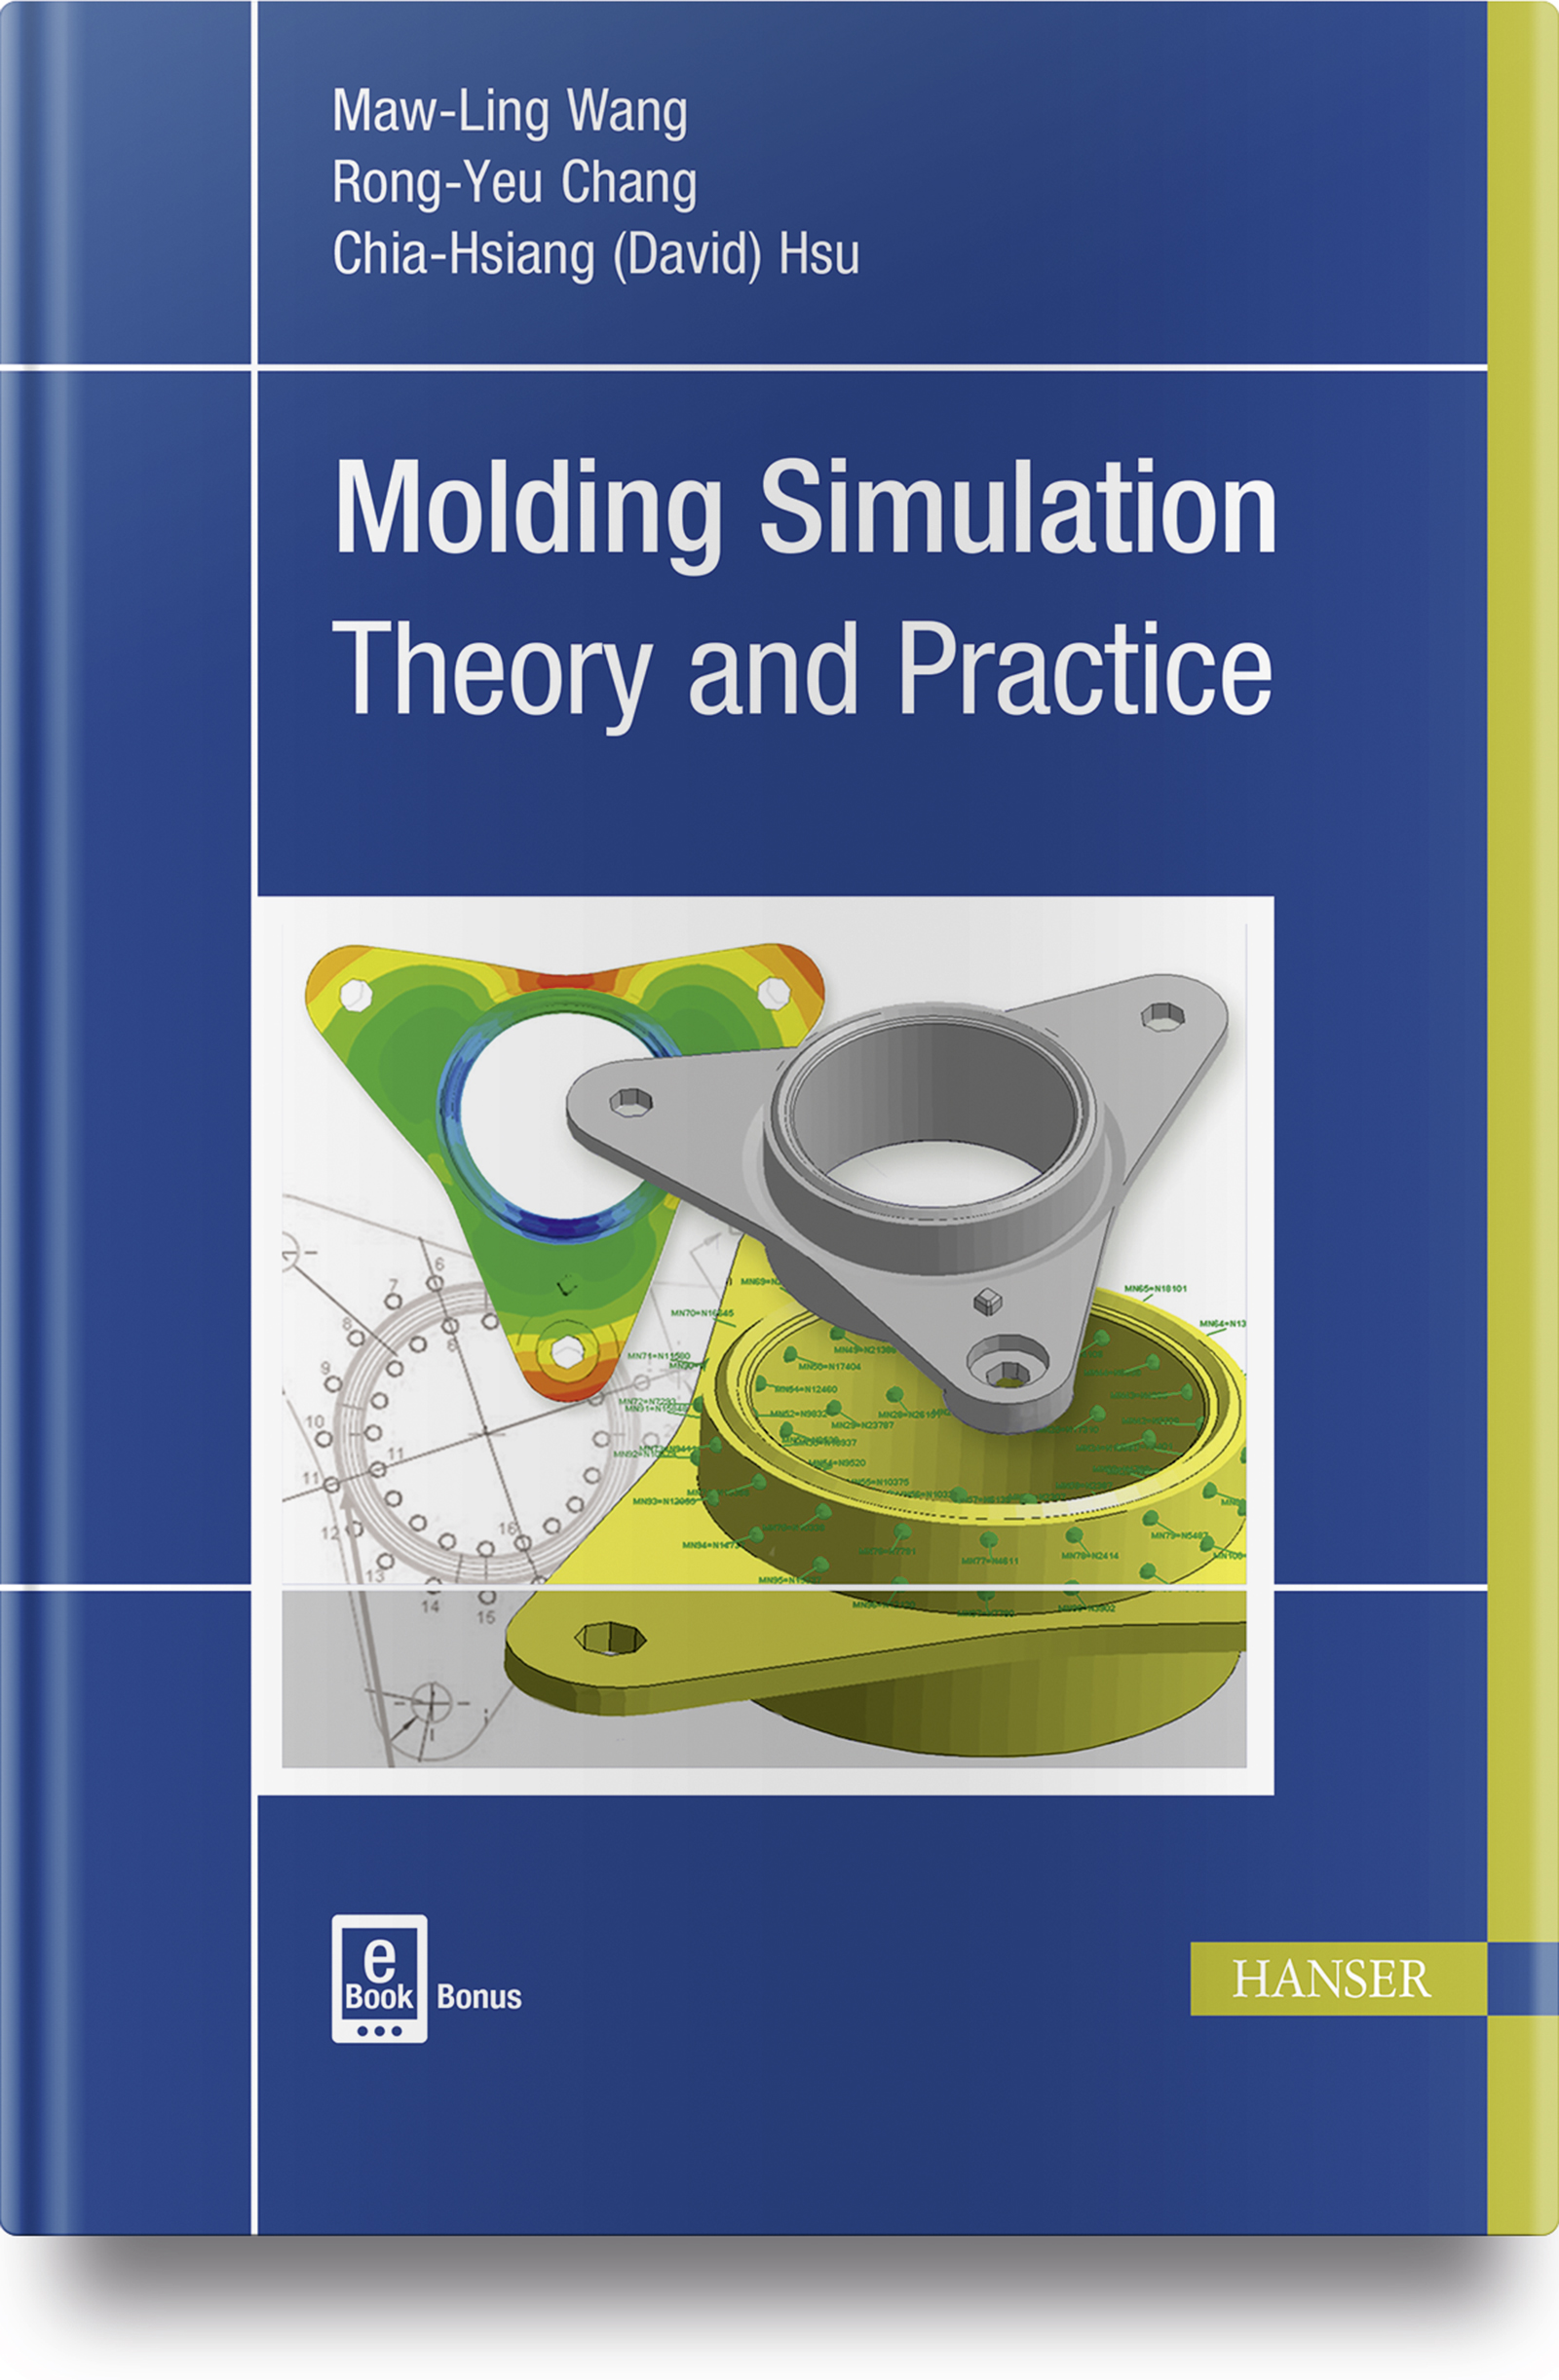 Molding Simulation: Theory and Practice, 978-1-56990-619-4